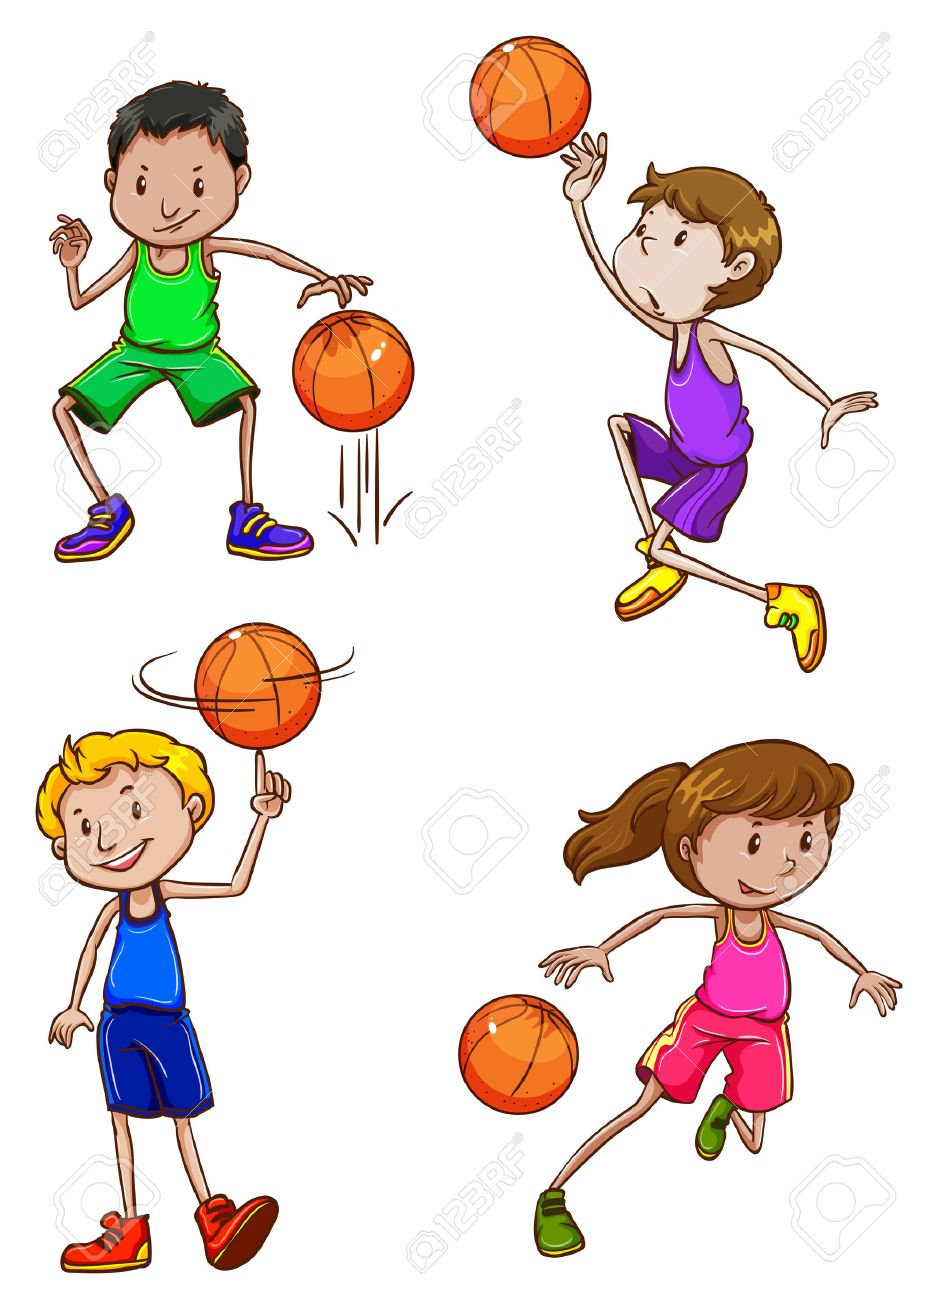 930x1300 A Simple Drawing Of The Basketball Players On A White Background